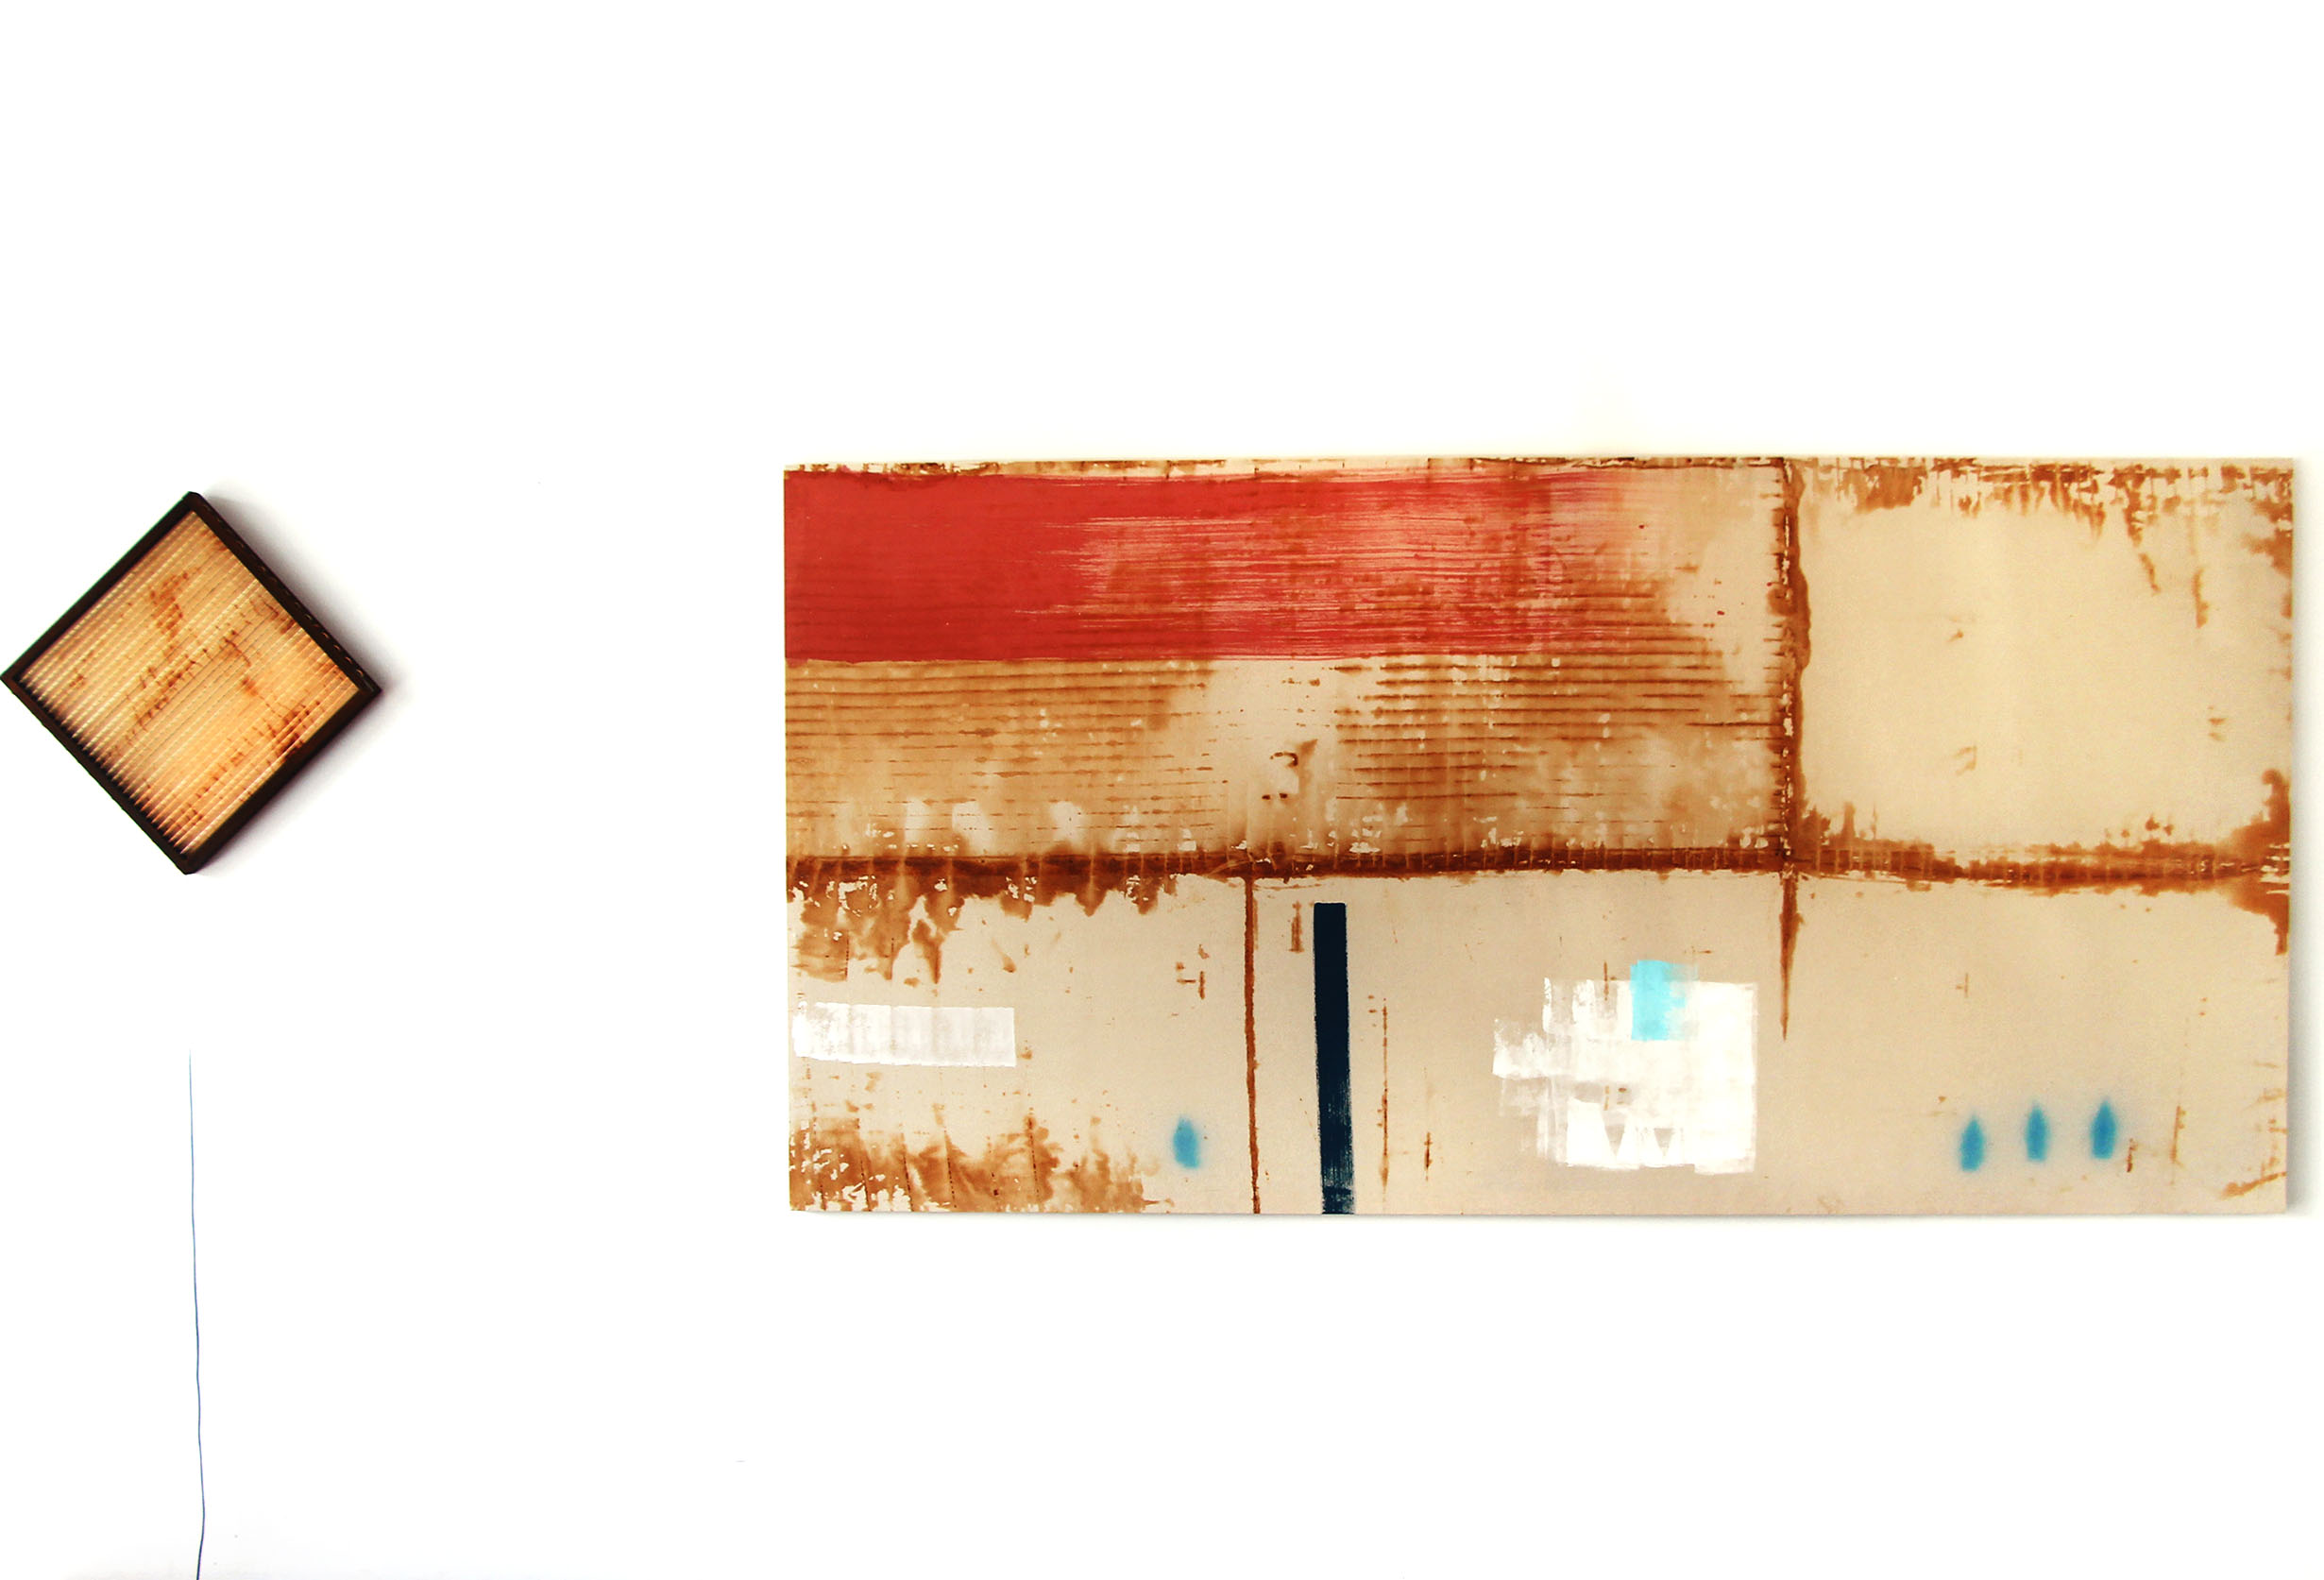 Like rust and water, 2016, rust-dyed calico, acrylic paint, spray paint, 266x133cm